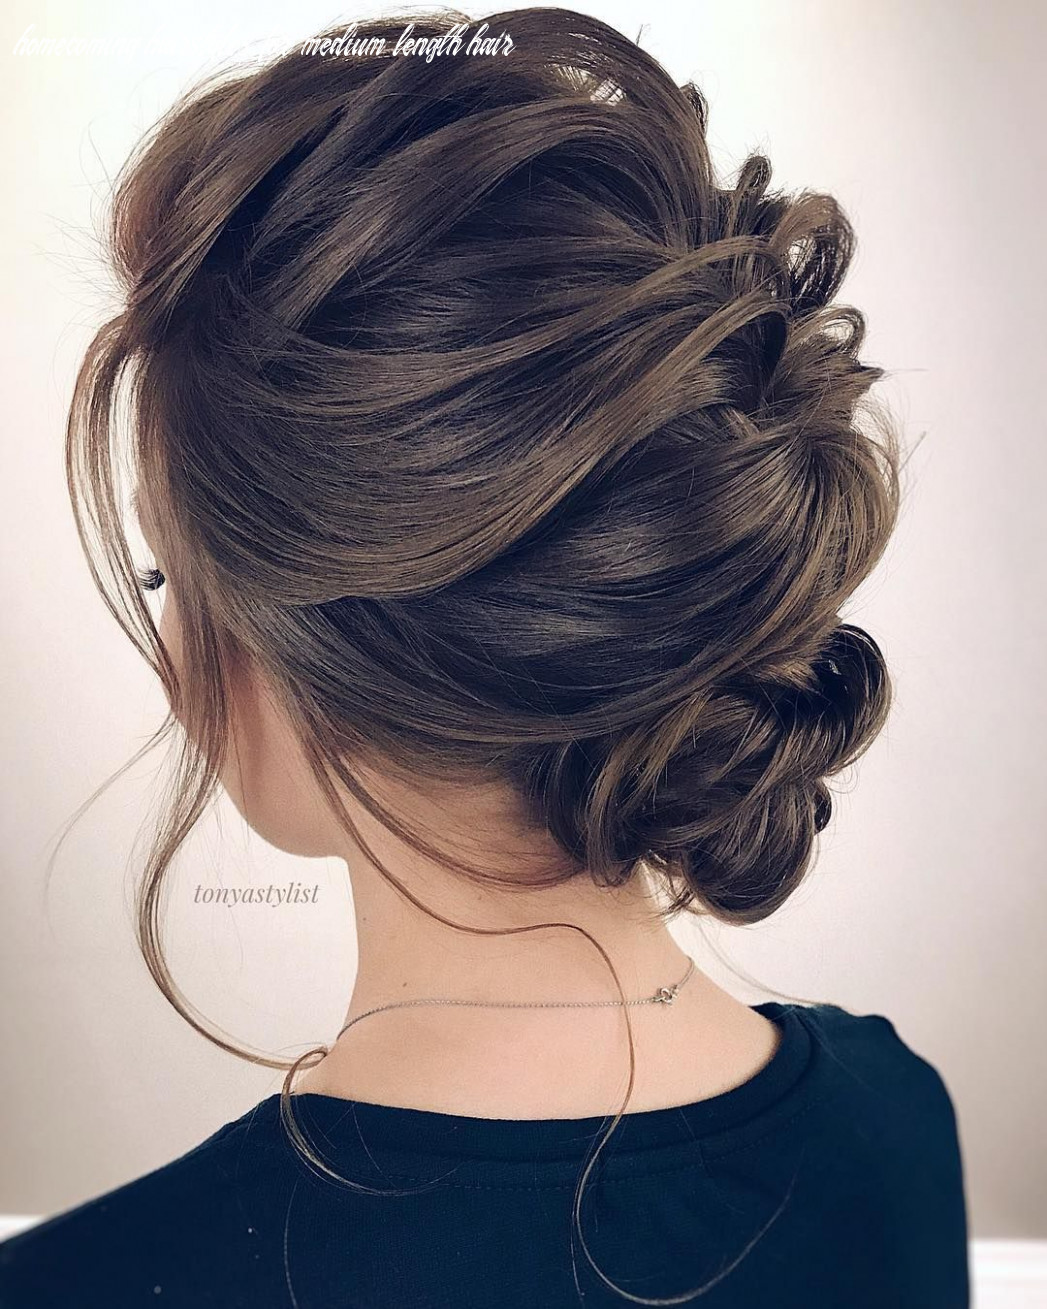 Prom hairstyles medium braids 12 easy updo hairstyles for medium